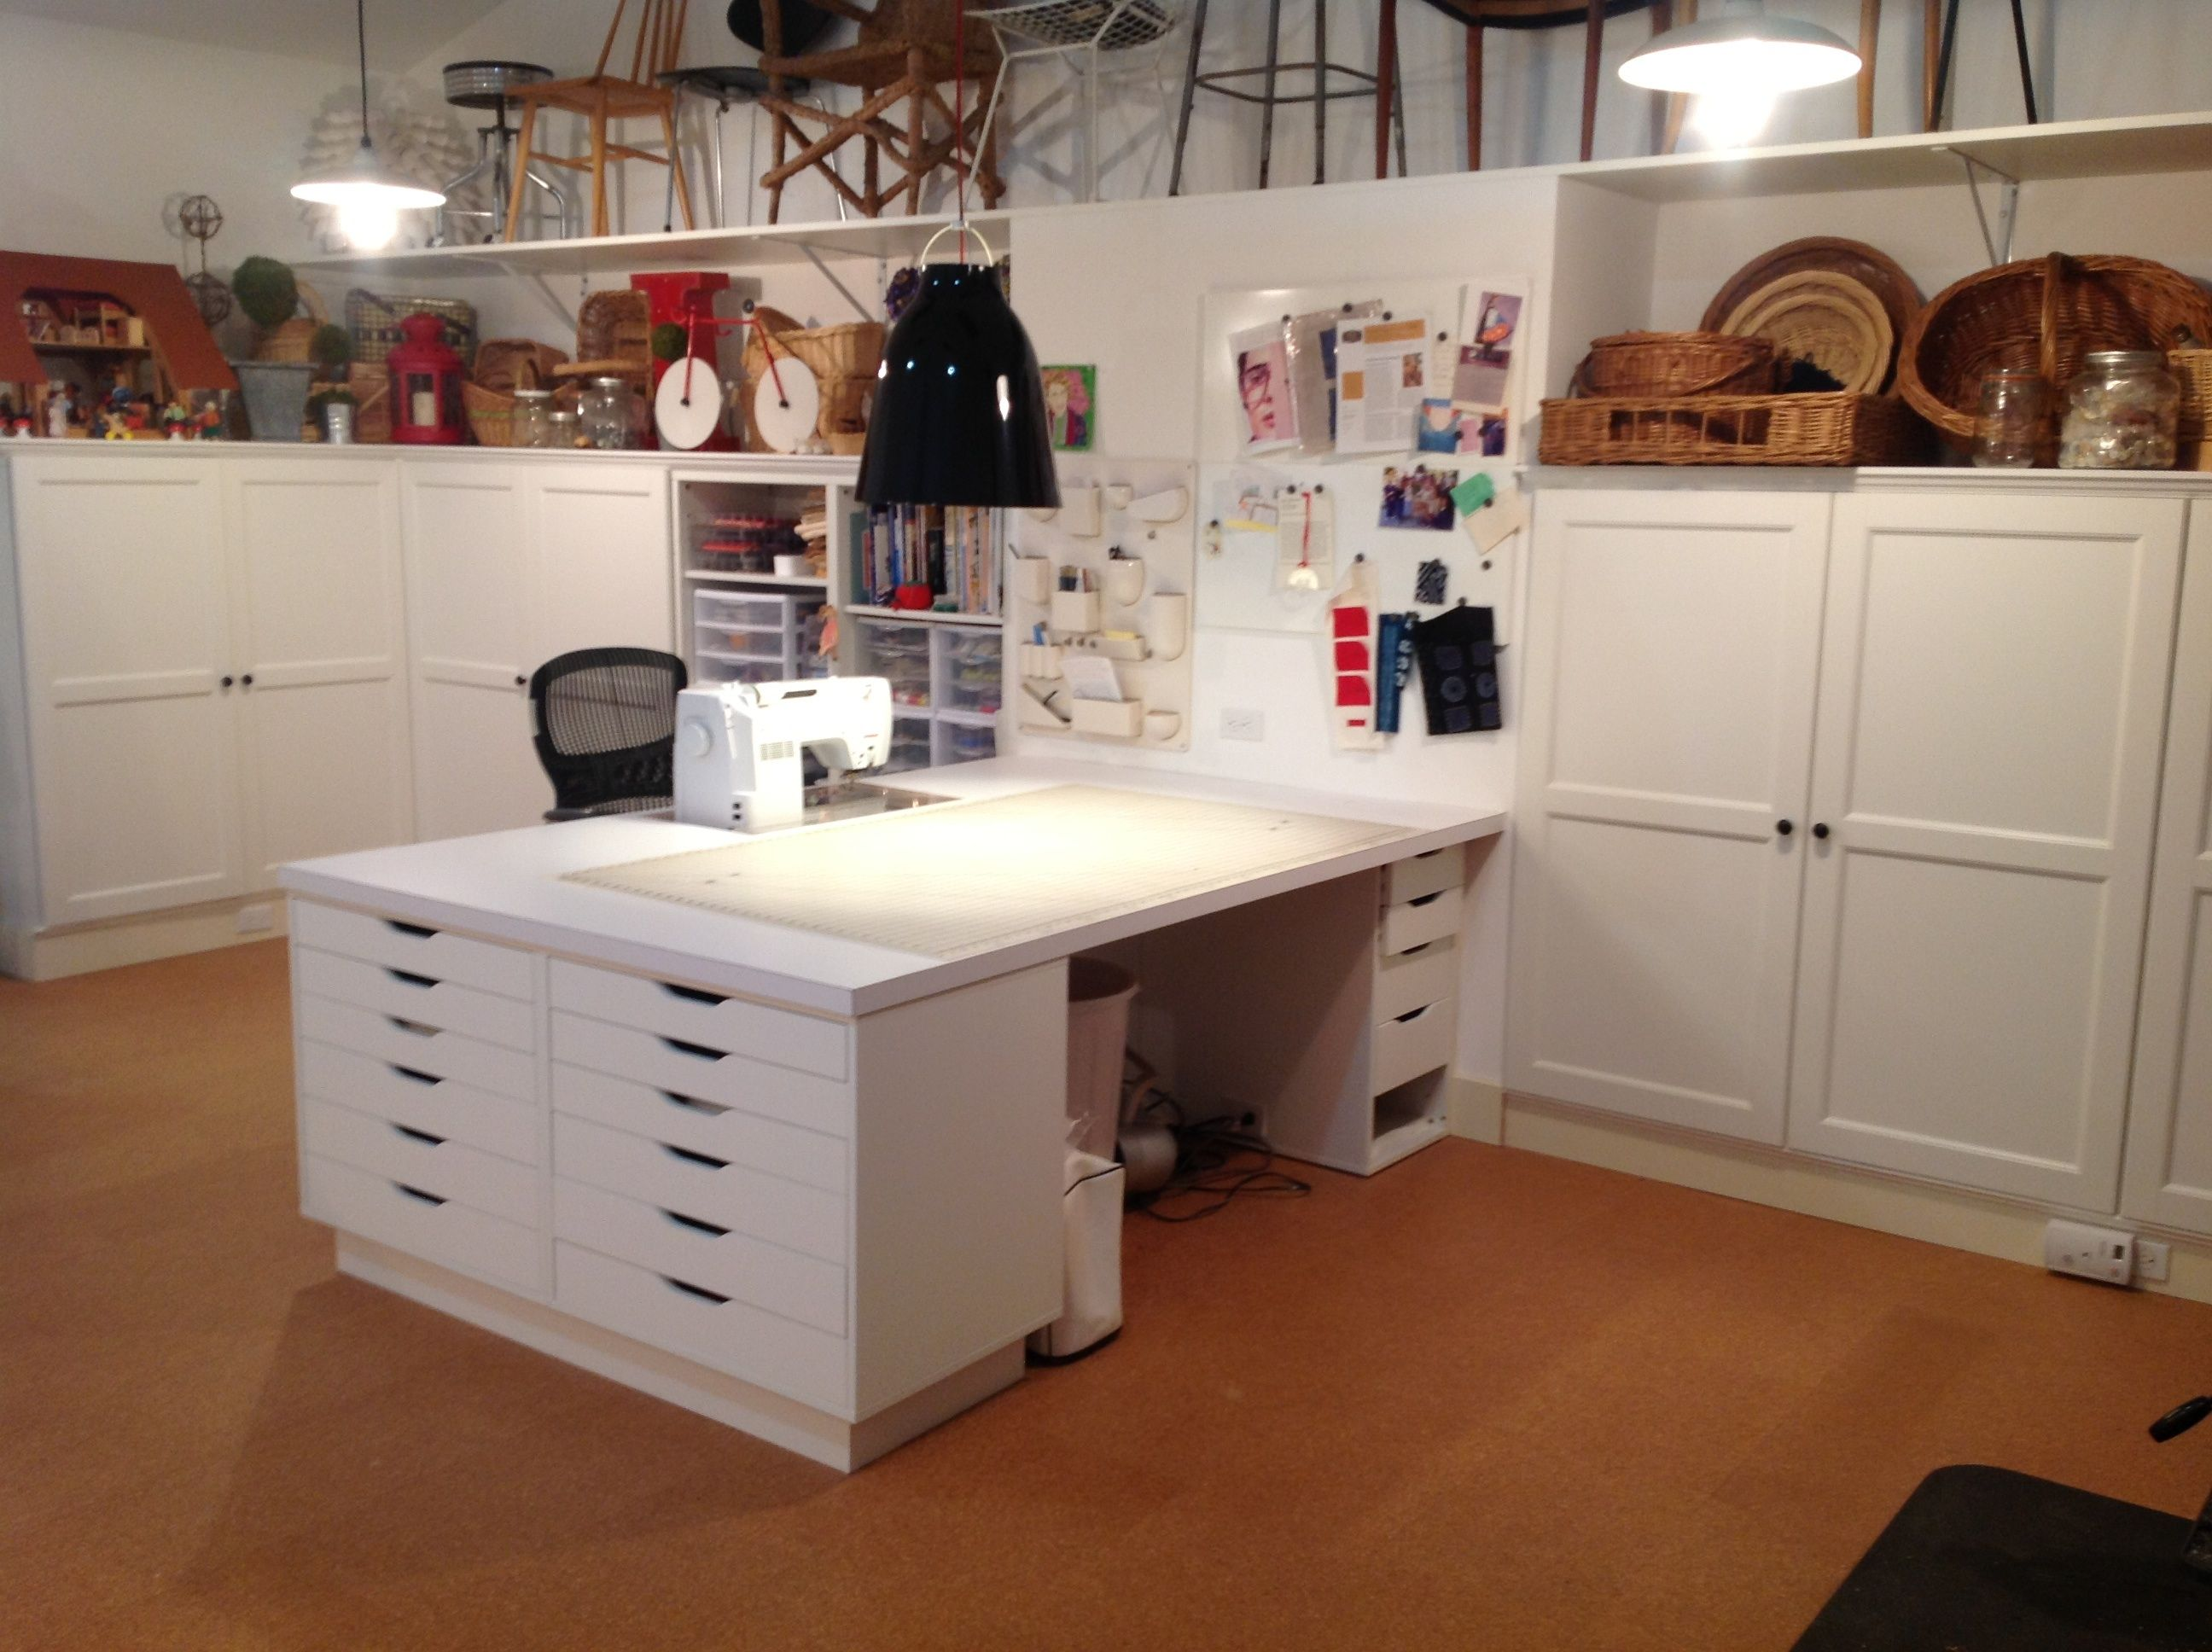 Tailormade Sewing Cabinet Quilt Art Studio Ikea Besta Storage Cabinets Built In With Crown